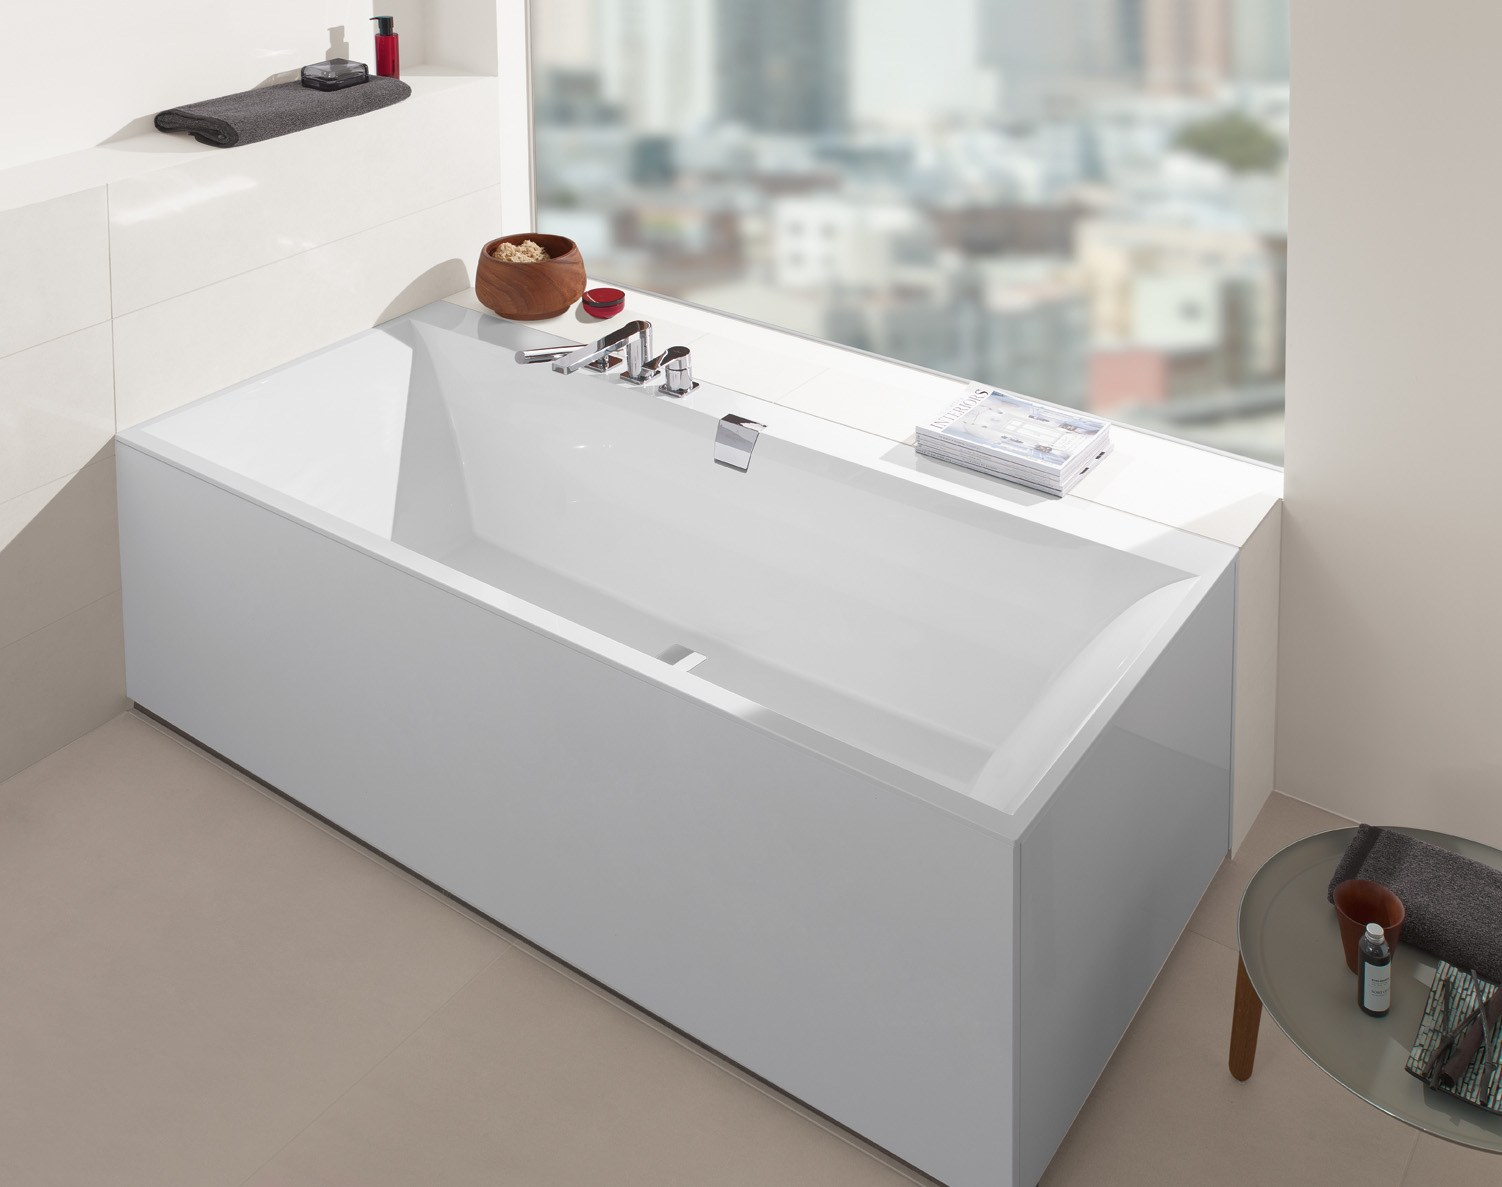 Squaro edge 12 bathtub by villeroy boch for Vasca da bagno